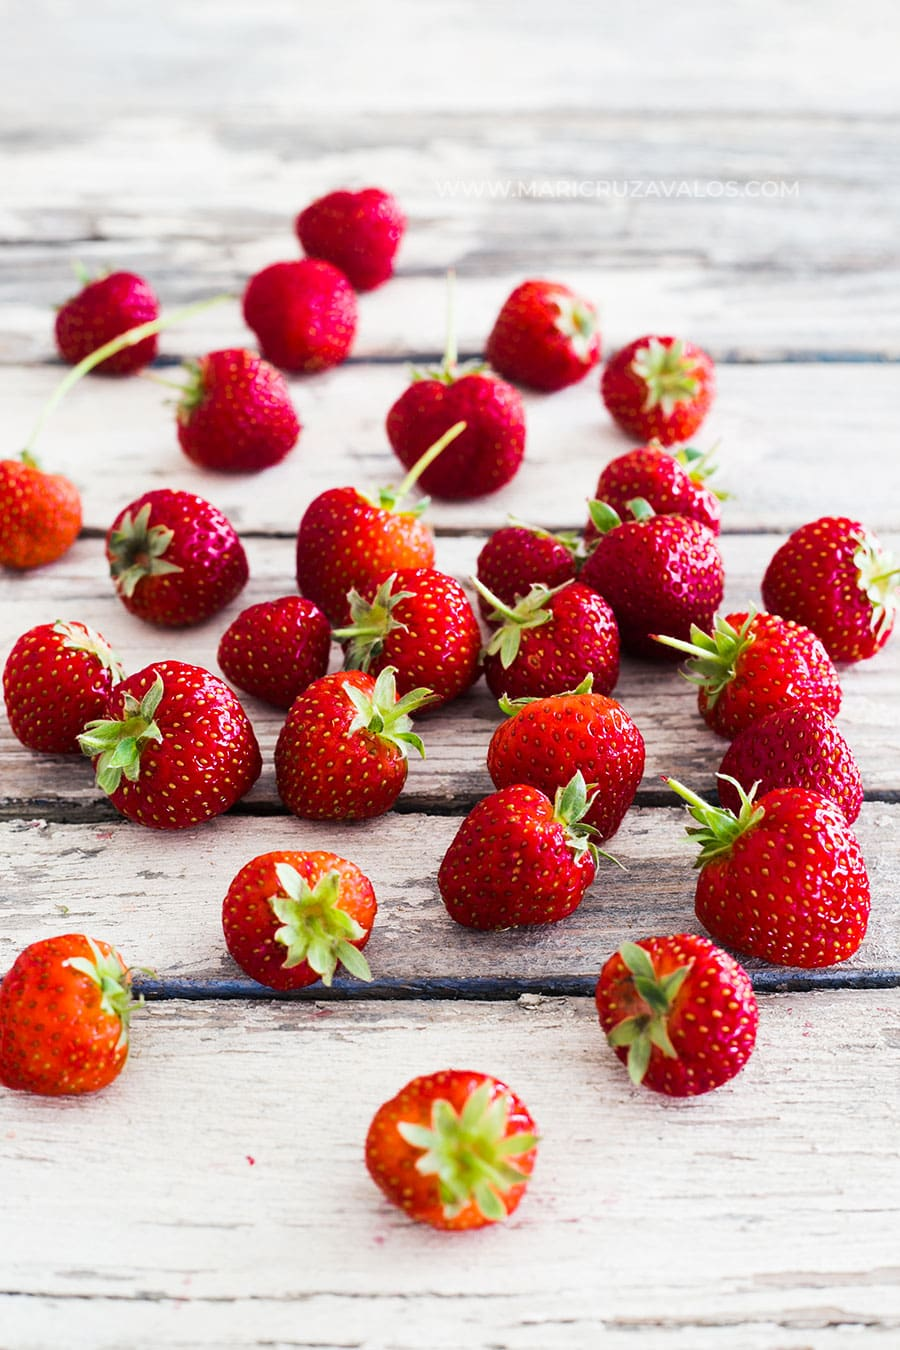 Fresh strawberries on a white wooden table.